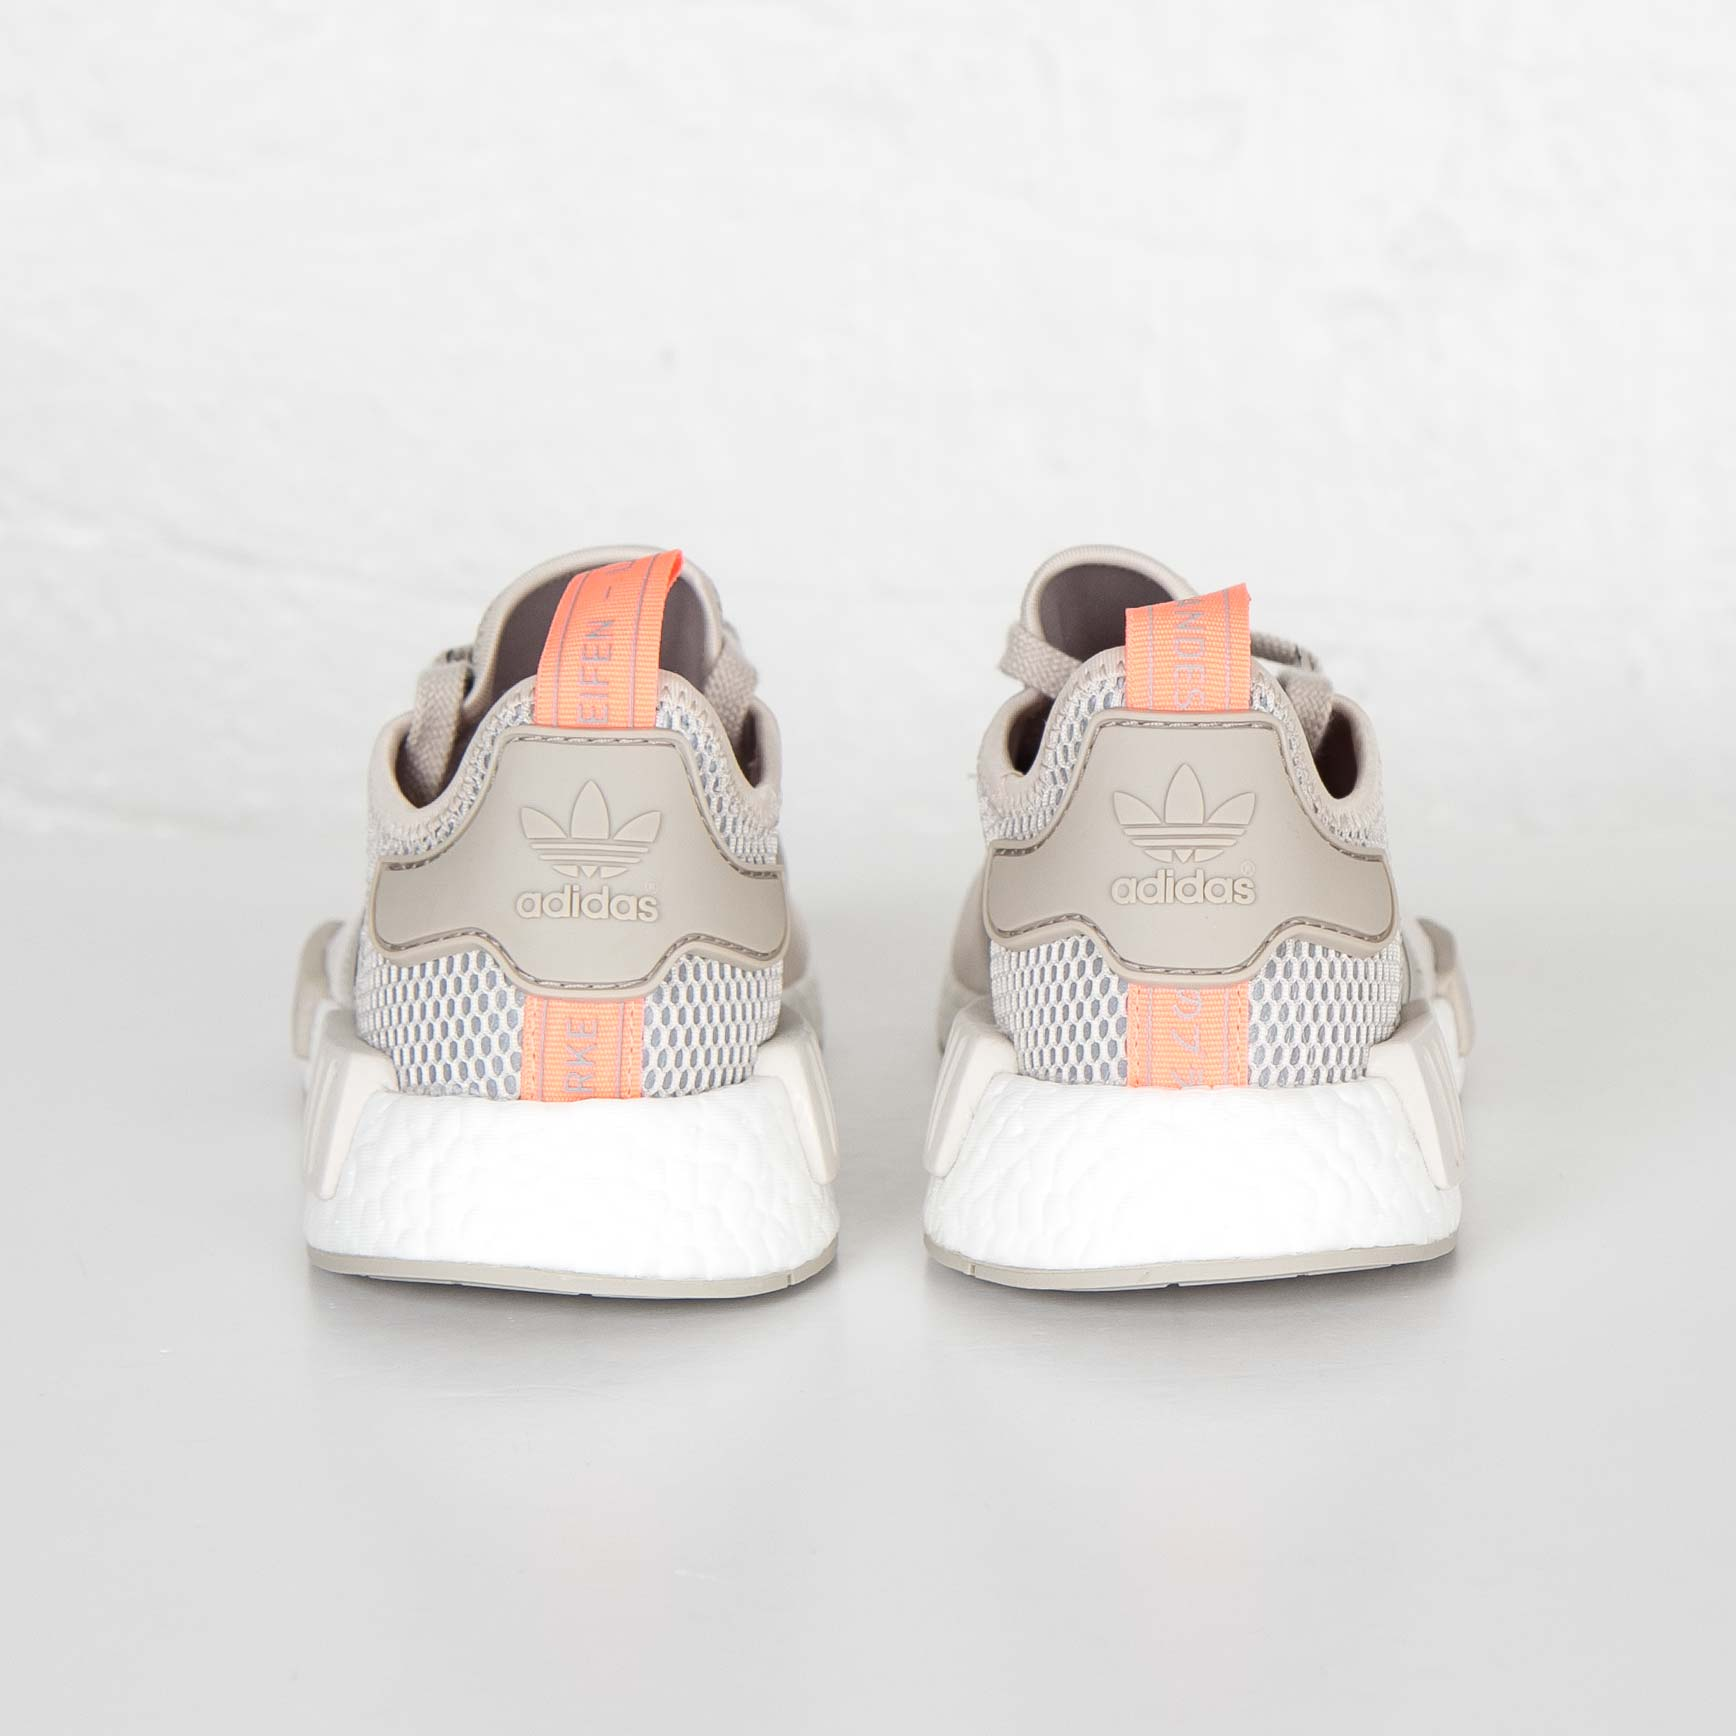 01e05d8a5 adidas NMD R1 W - S75233 - Sneakersnstuff